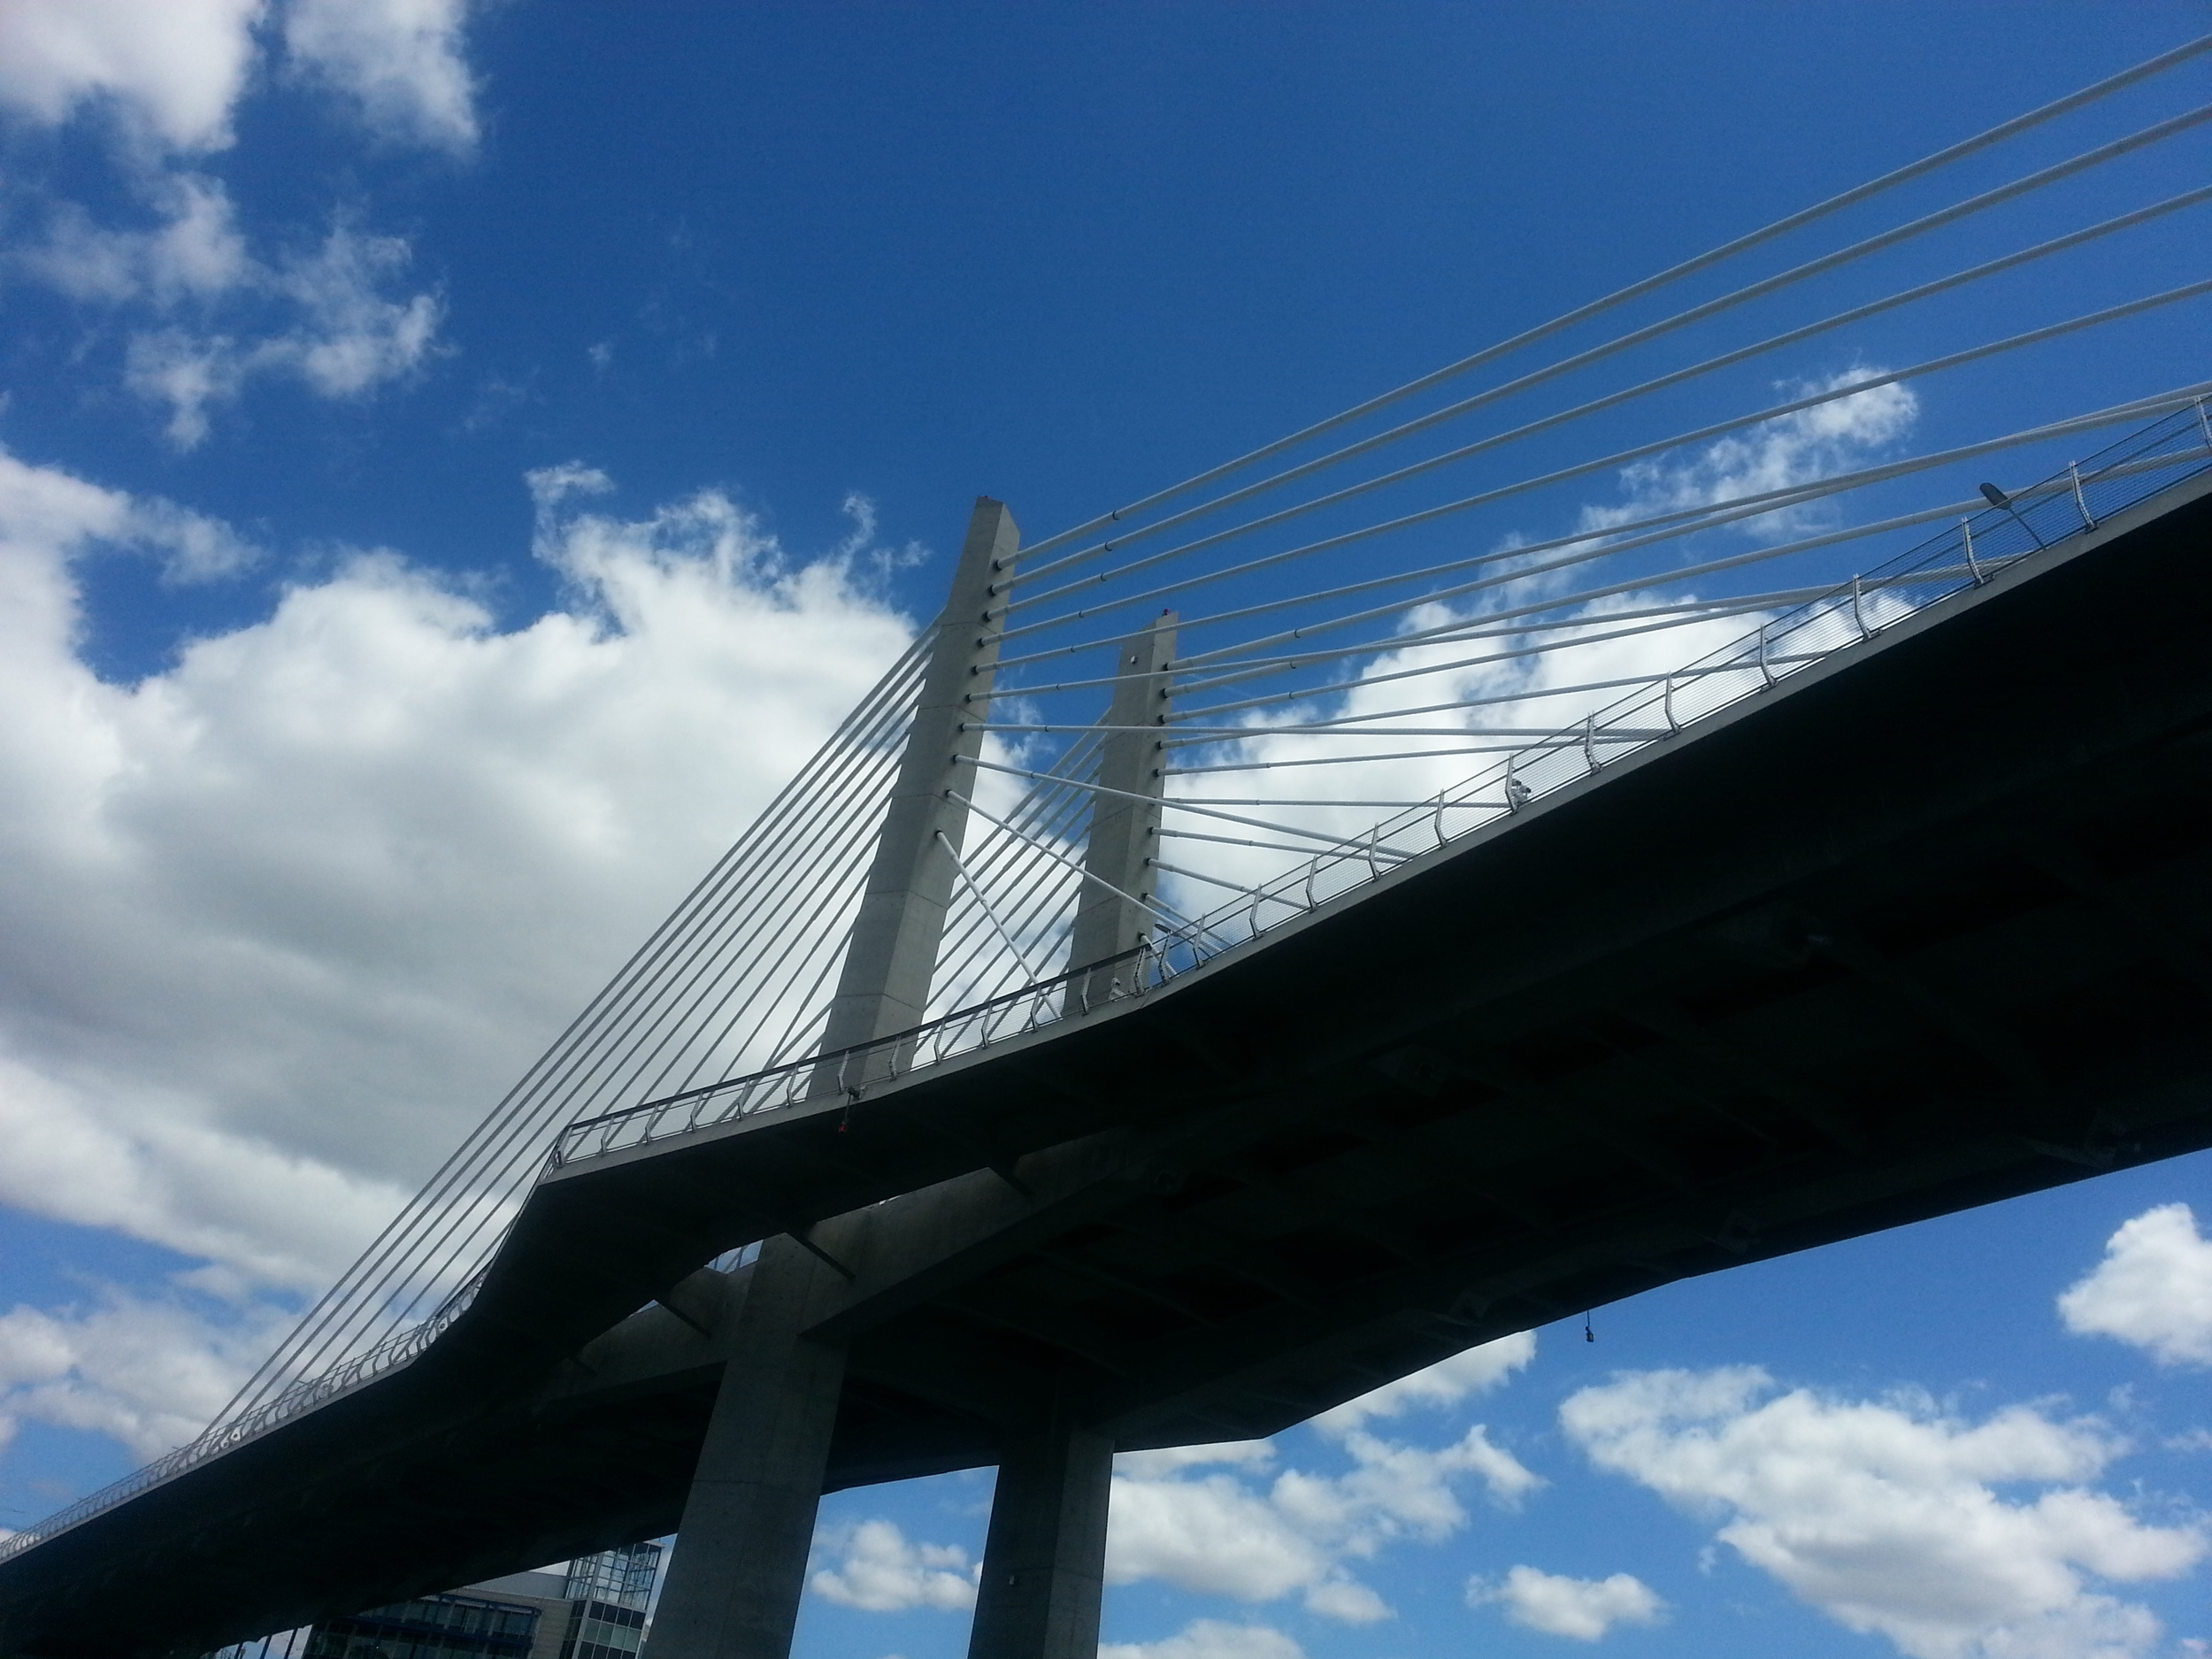 Among Portland's many highlights is the new Tilikum Bridge that will open In September 2015 -- providing a transit/pedestrian/bicycle-only river crossing. This photo of the bridge was taken while kayaking under it on the Willamette River...a great way to see Portland! (Photo: MZimmerman, 2015).